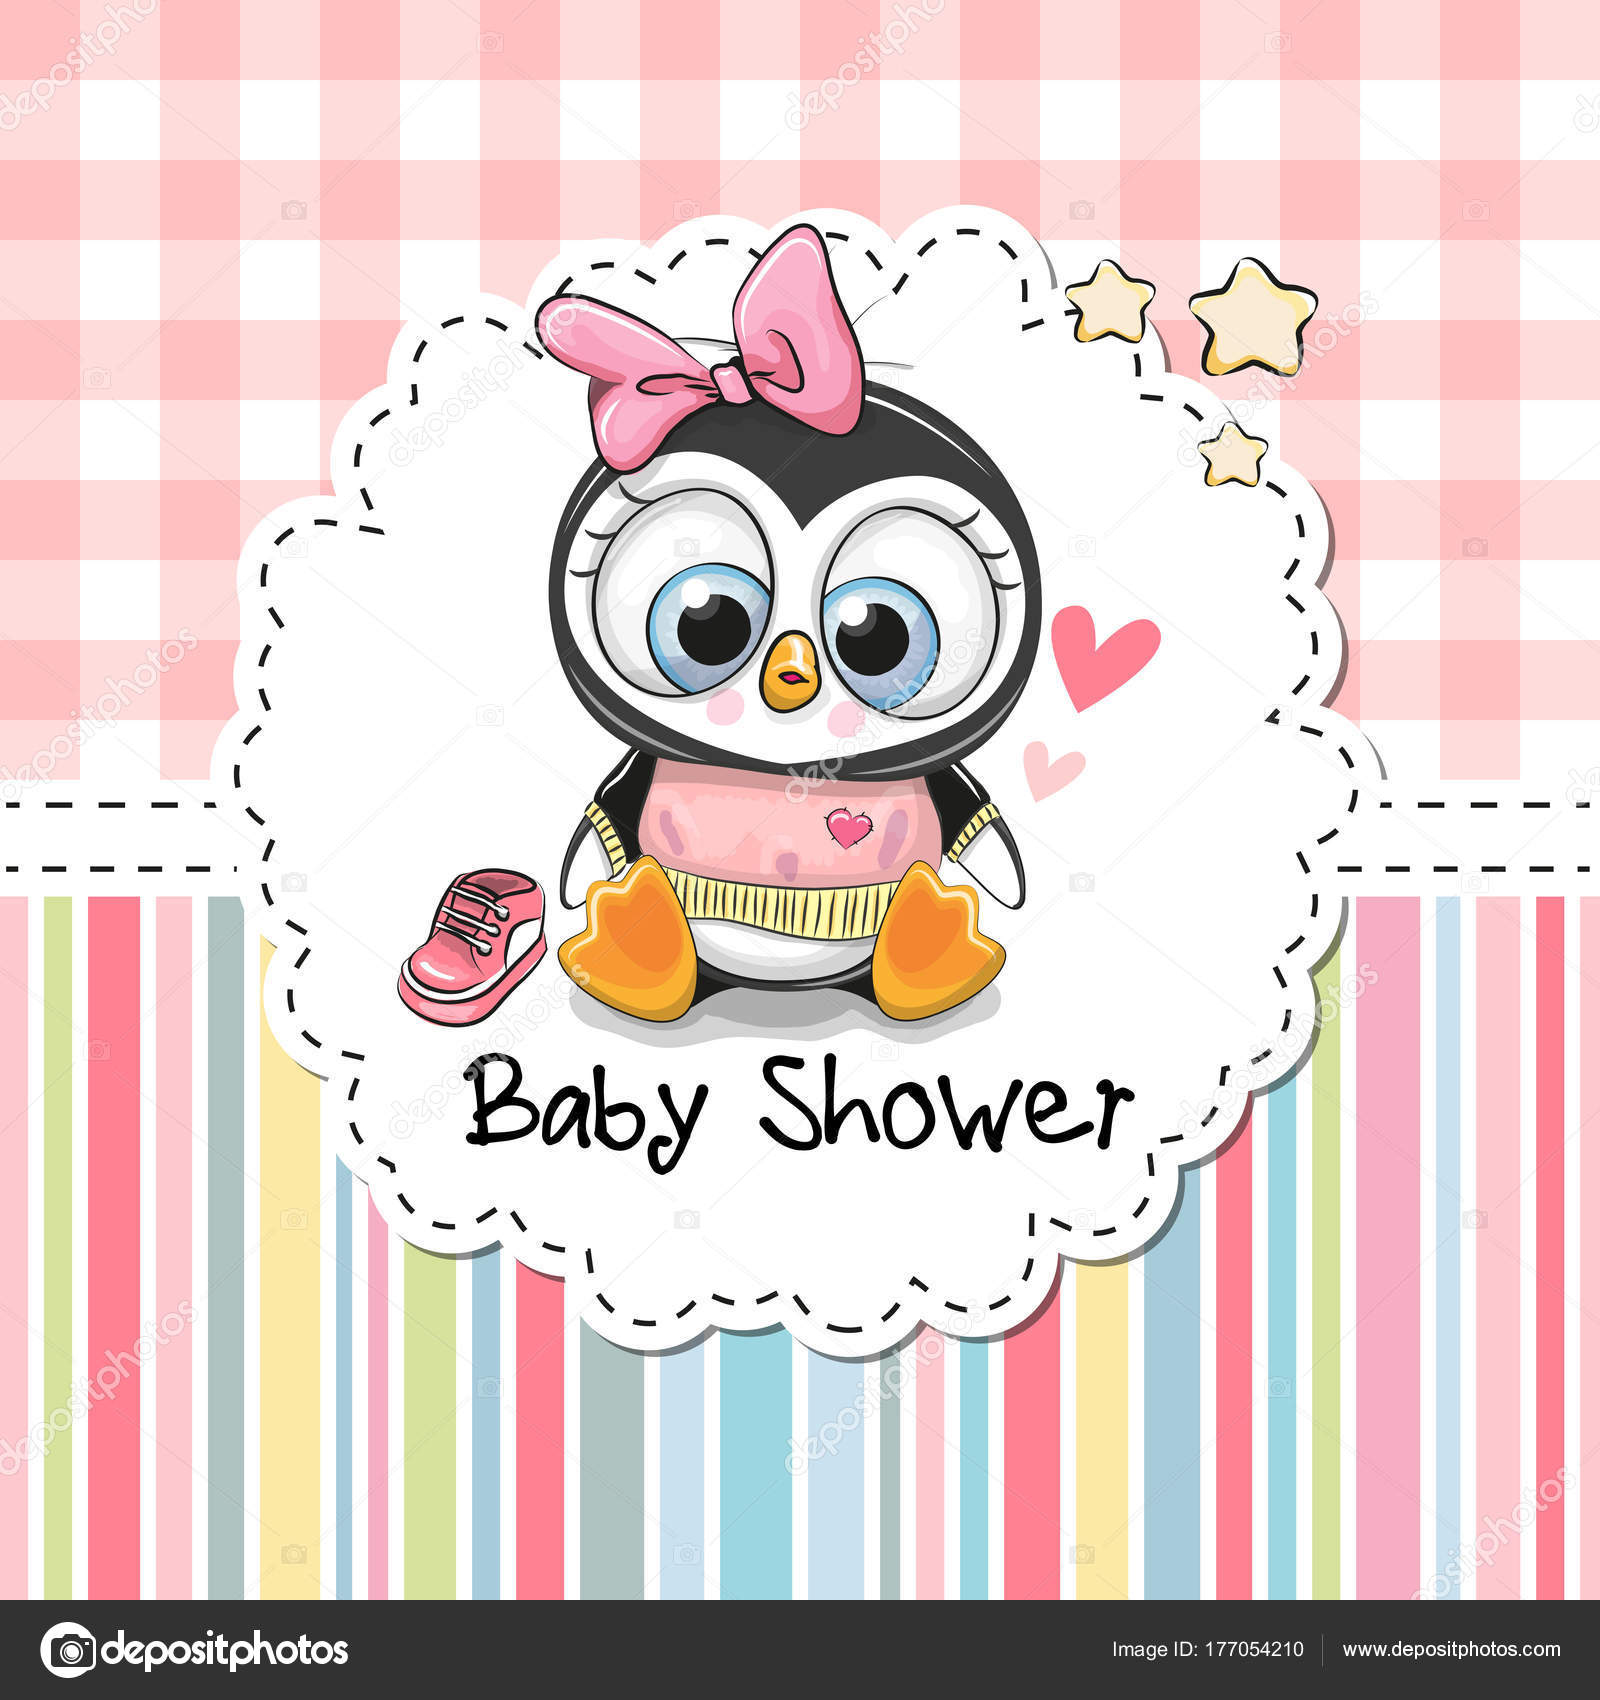 Baby Shower Greeting Card With Cute Penguin Image Vectorielle